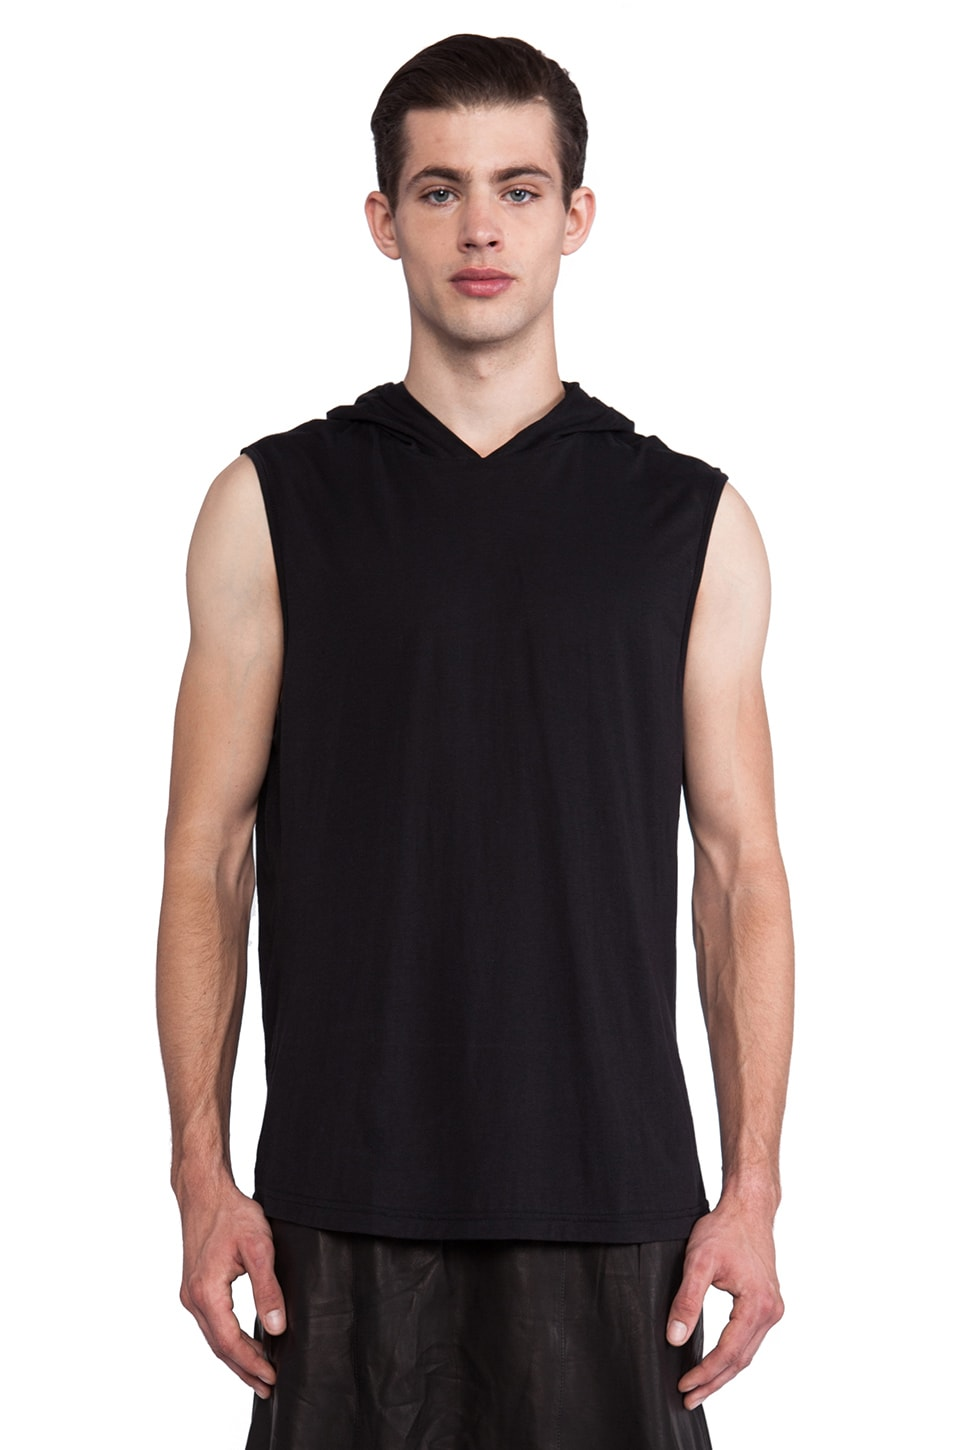 SKINGRAFT Sleeveless Hoodie T-Shirt in Black